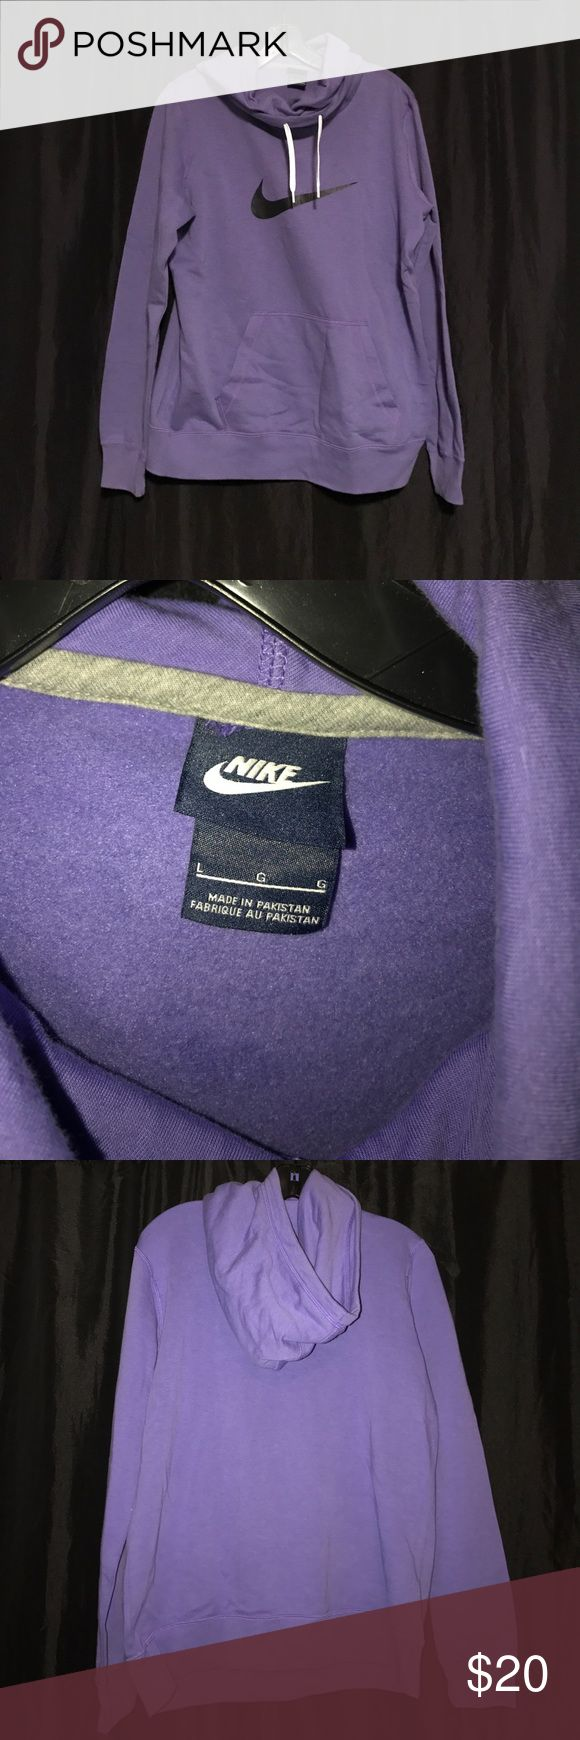 Brand new Nike hoodie Lavender Nike Large women's hoodie! Never worn and in perfect condition. Has black Nike check on chest and white drawstrings. Nike Tops Sweatshirts & Hoodies